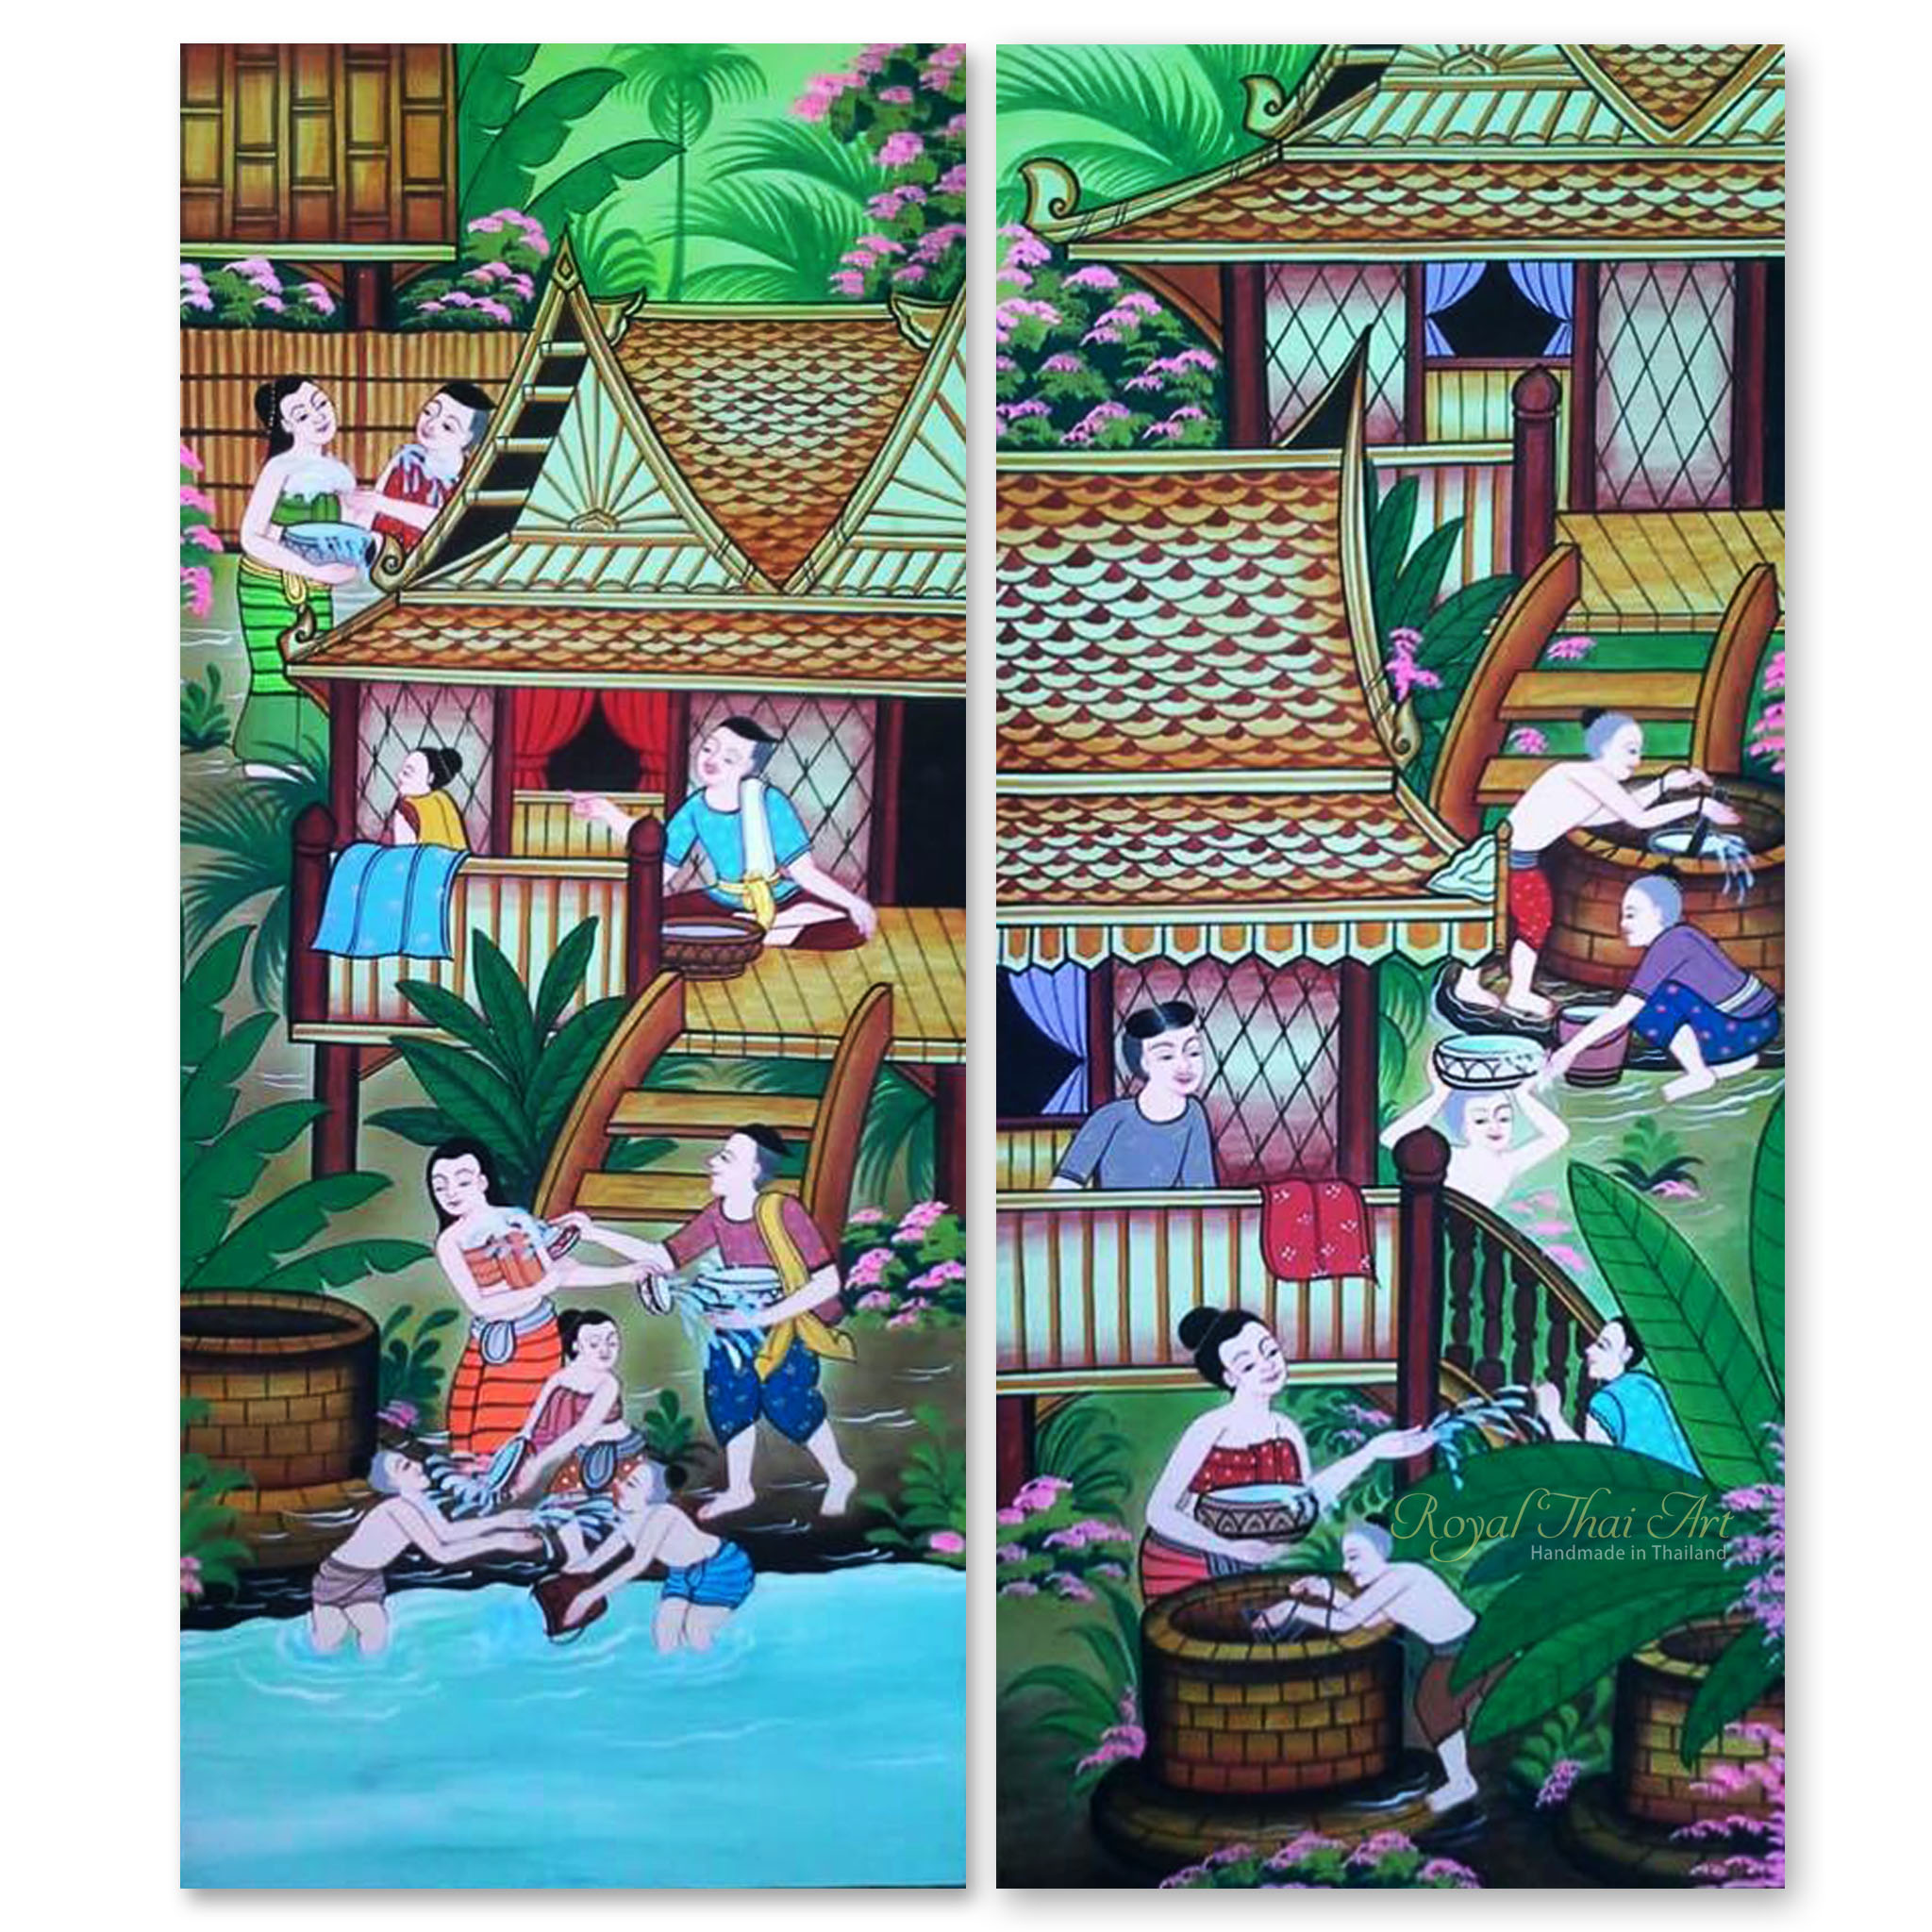 tableau peinture thailande country art thai water festival assistant shopping. Black Bedroom Furniture Sets. Home Design Ideas